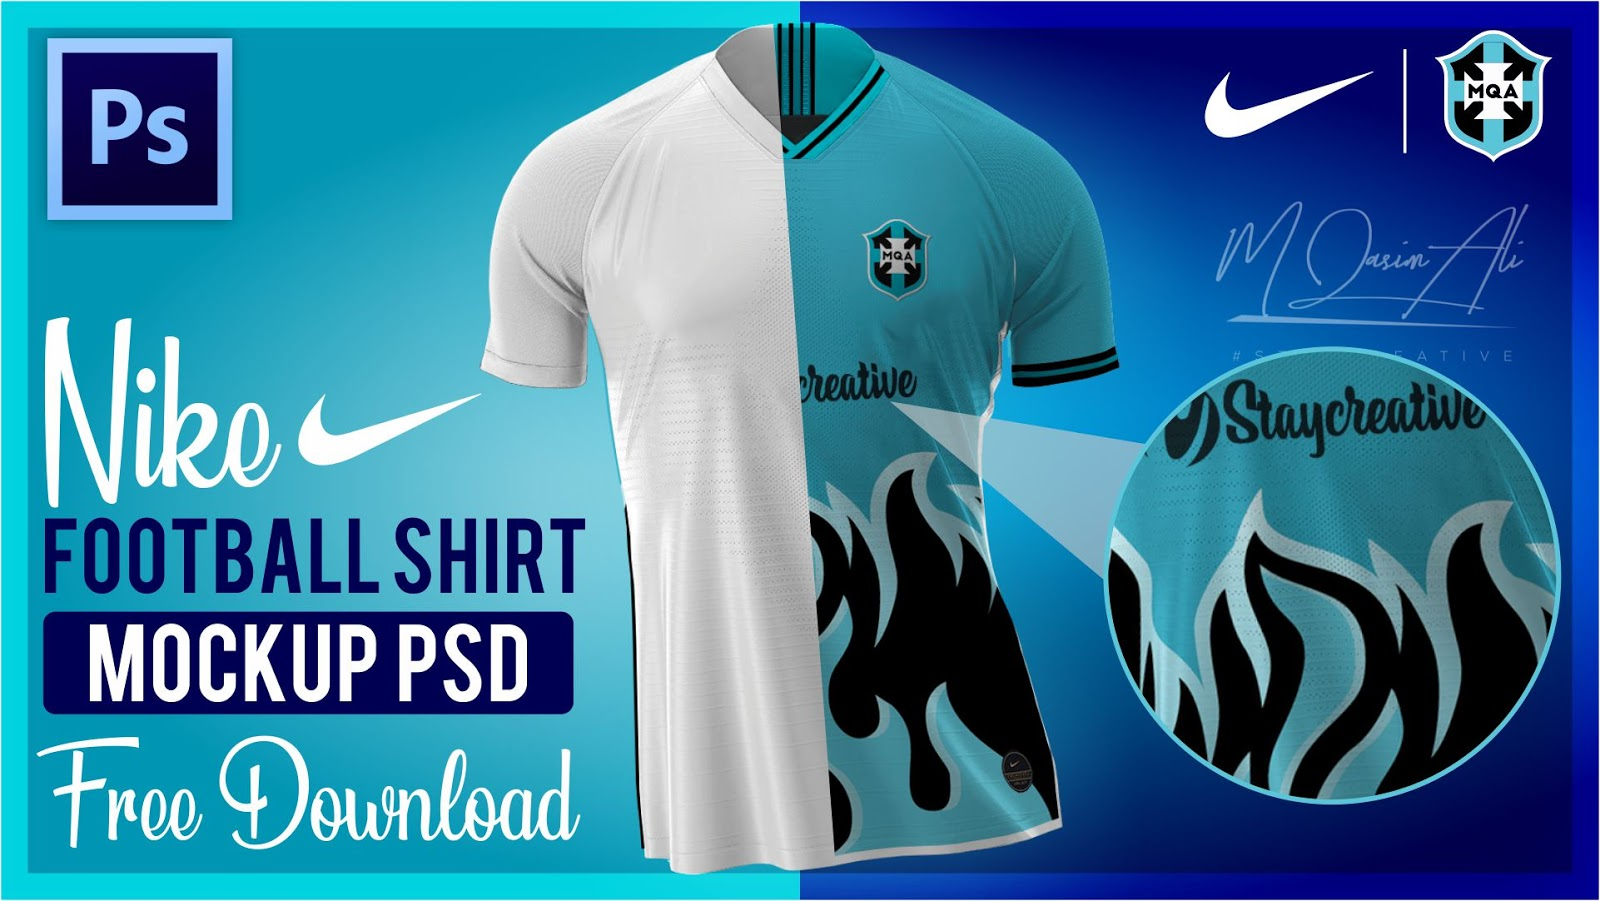 Nike Football Shirt Mockup Psd File Free Download By M Qasim Ali